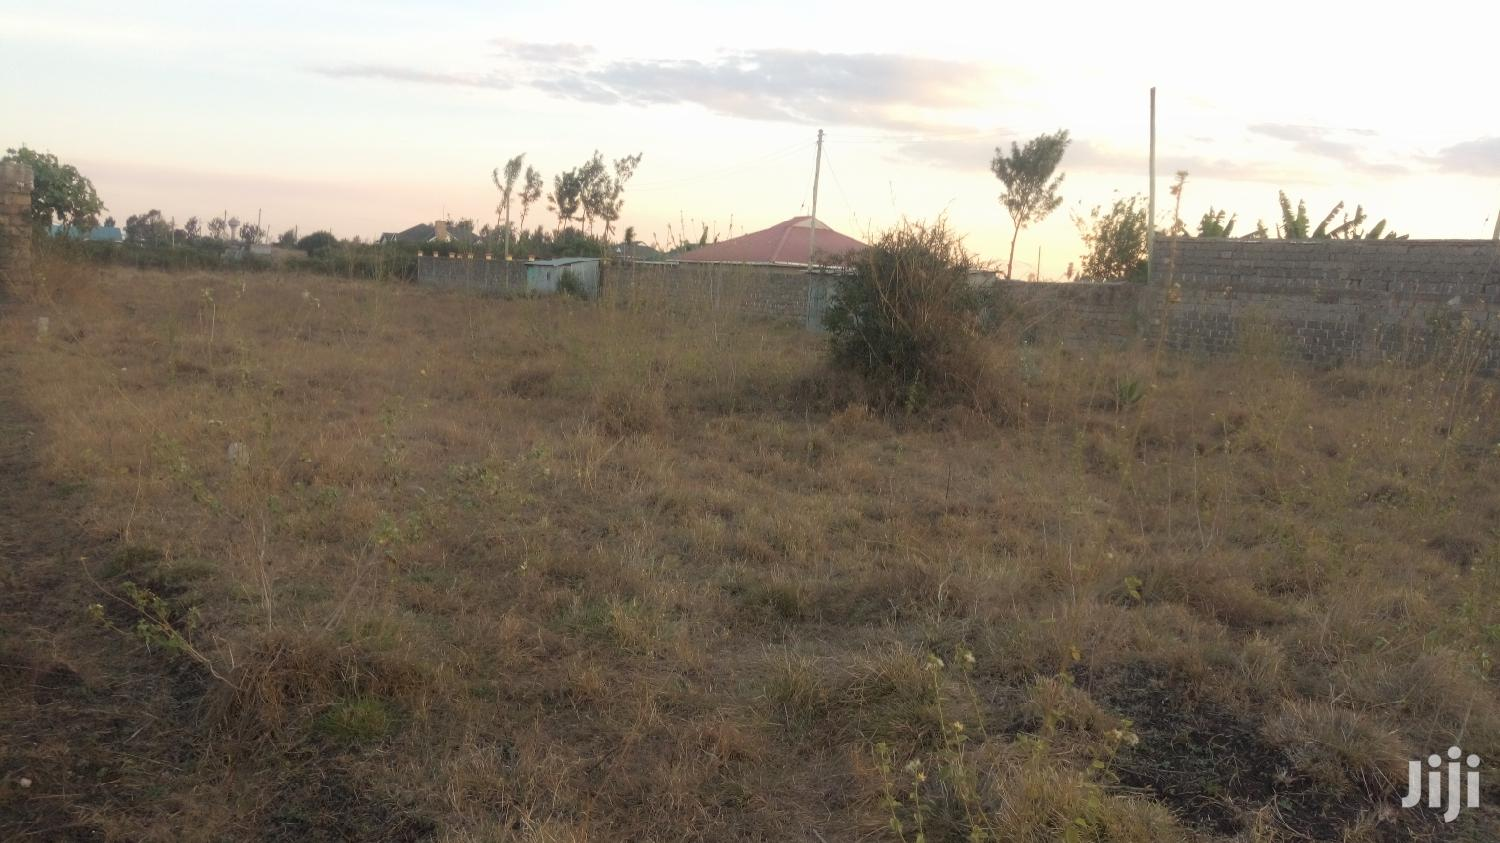 100x100 Plot for Sale in Ruai | Land & Plots For Sale for sale in Ruai, Nairobi, Kenya